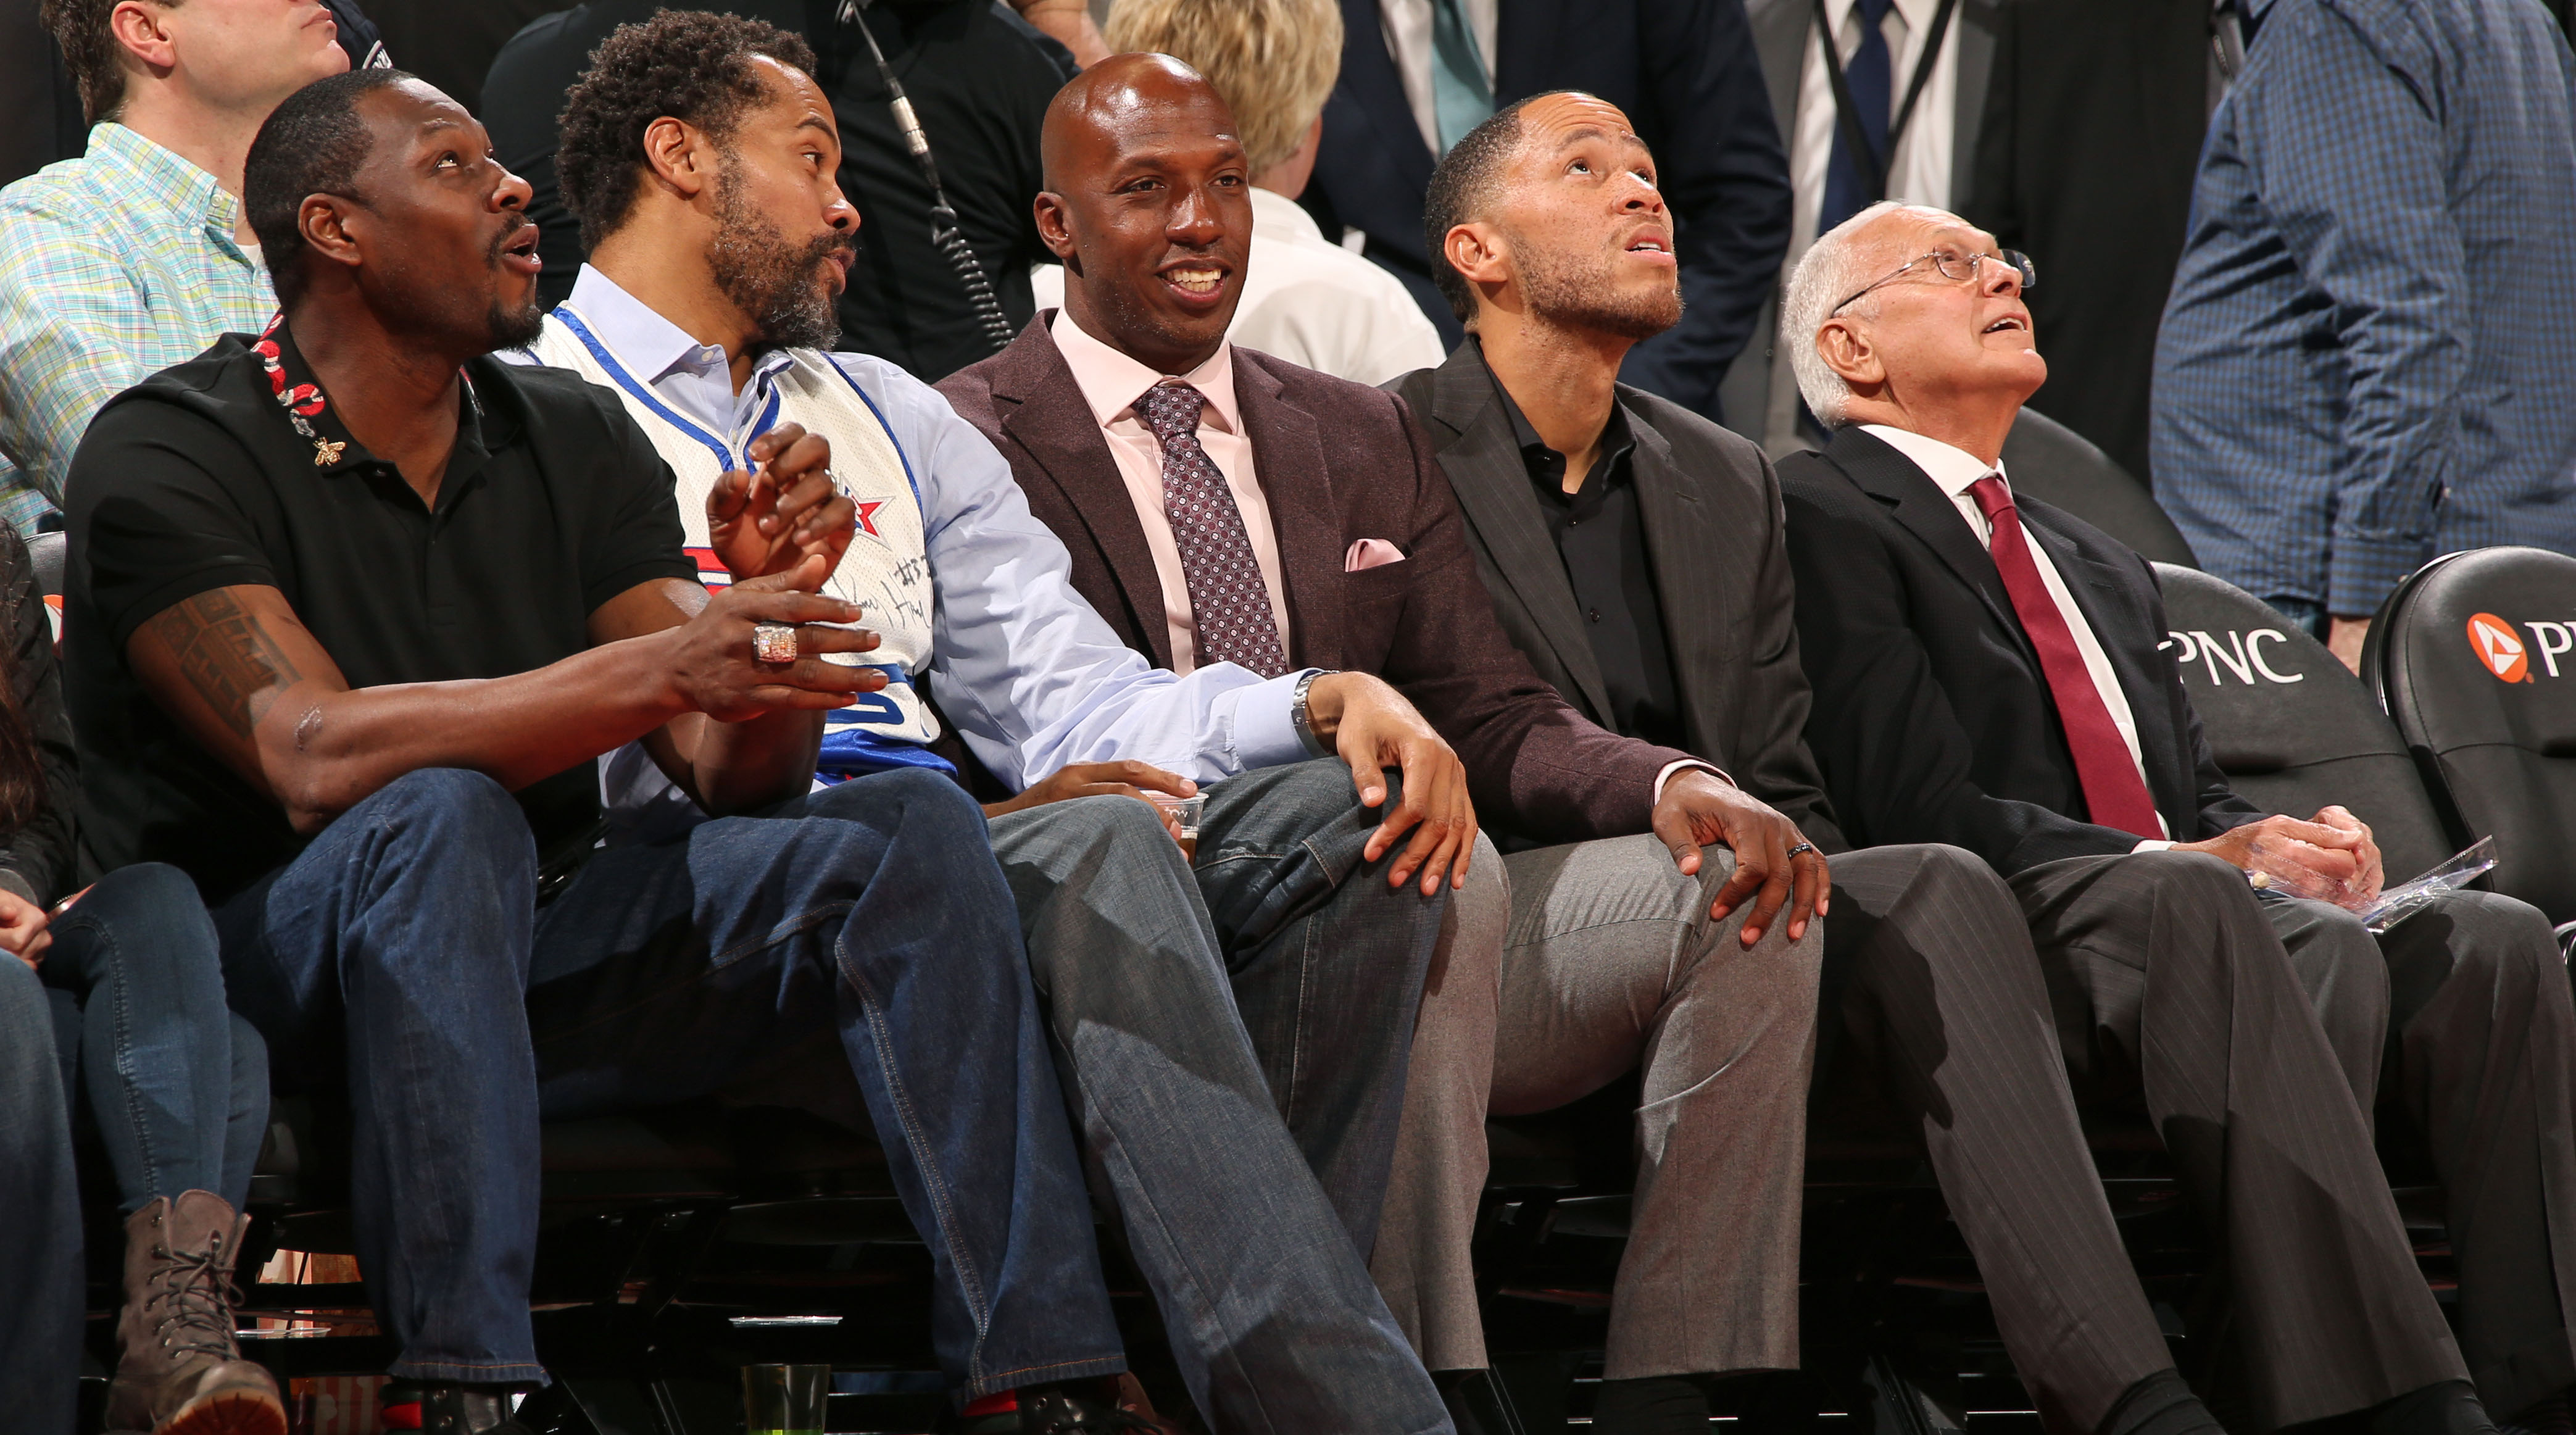 AUBURN HILLS, MI - FEBRUARY 26:  Former Detroit Pistons, Ben Wallace, Rasheed Wallace, Chauncey Billups and Tayshaun Prince attend the game against the Boston Celtics on February 26, 2017 at The Palace of Auburn Hills in Auburn Hills, Michigan. NOTE TO USER: User expressly acknowledges and agrees that, by downloading and/or using this photograph, User is consenting to the terms and conditions of the Getty Images License Agreement. Mandatory Copyright Notice: Copyright 2017 NBAE (Photo by Brian Sevald/NBAE via Getty Images)